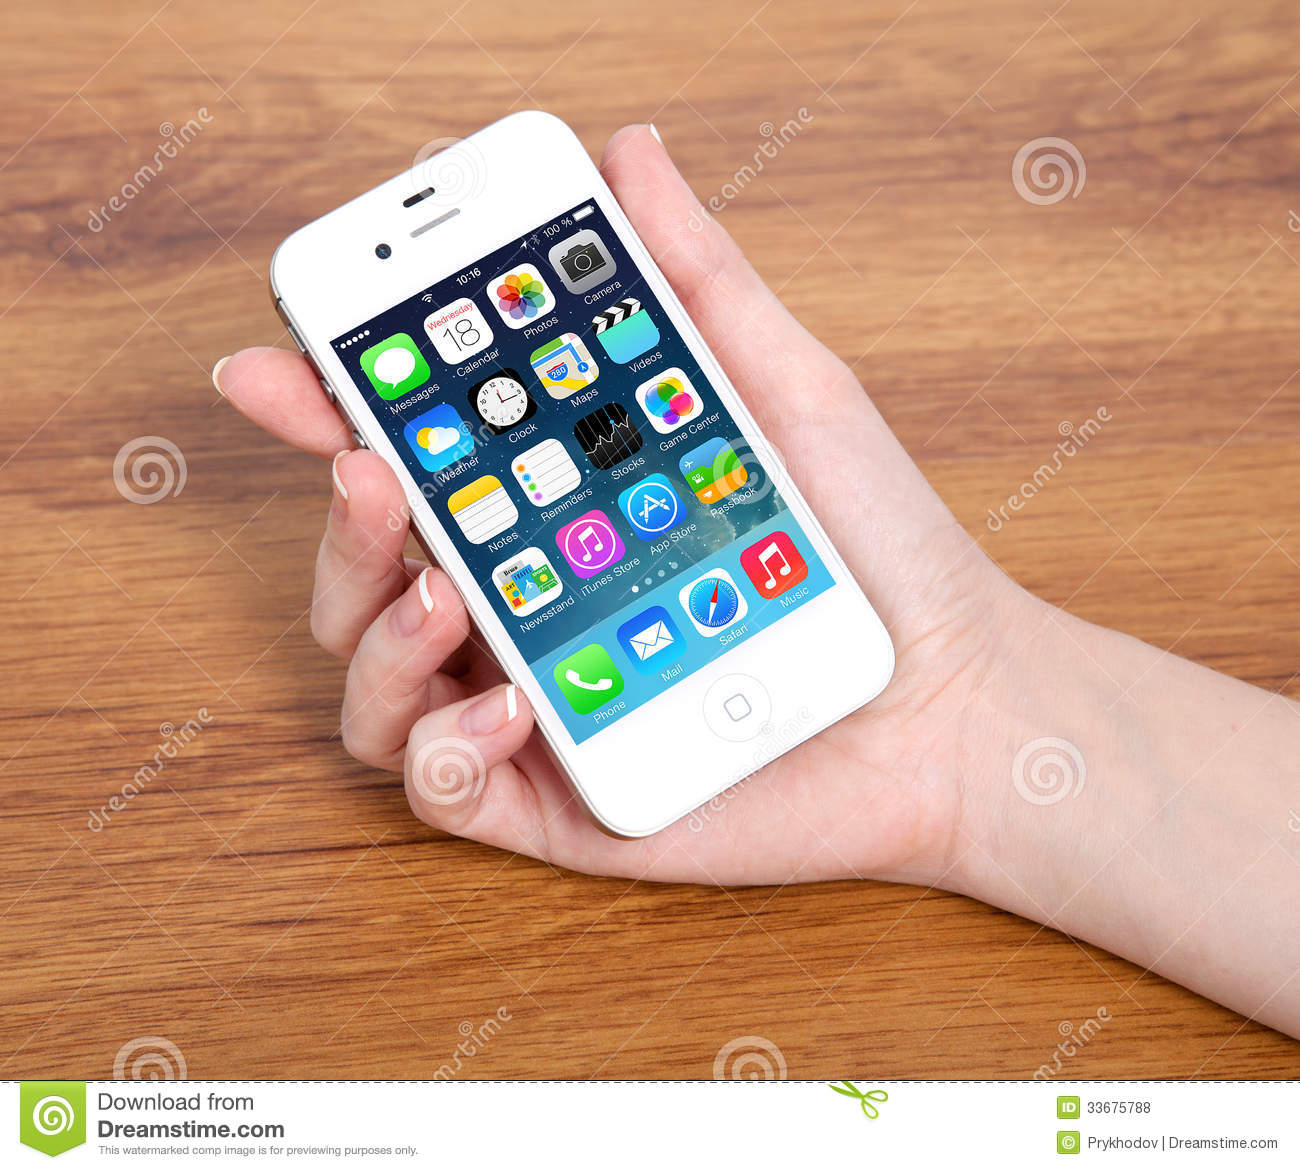 New Operating System Ios 7 Screen On Iphone 4s Apple